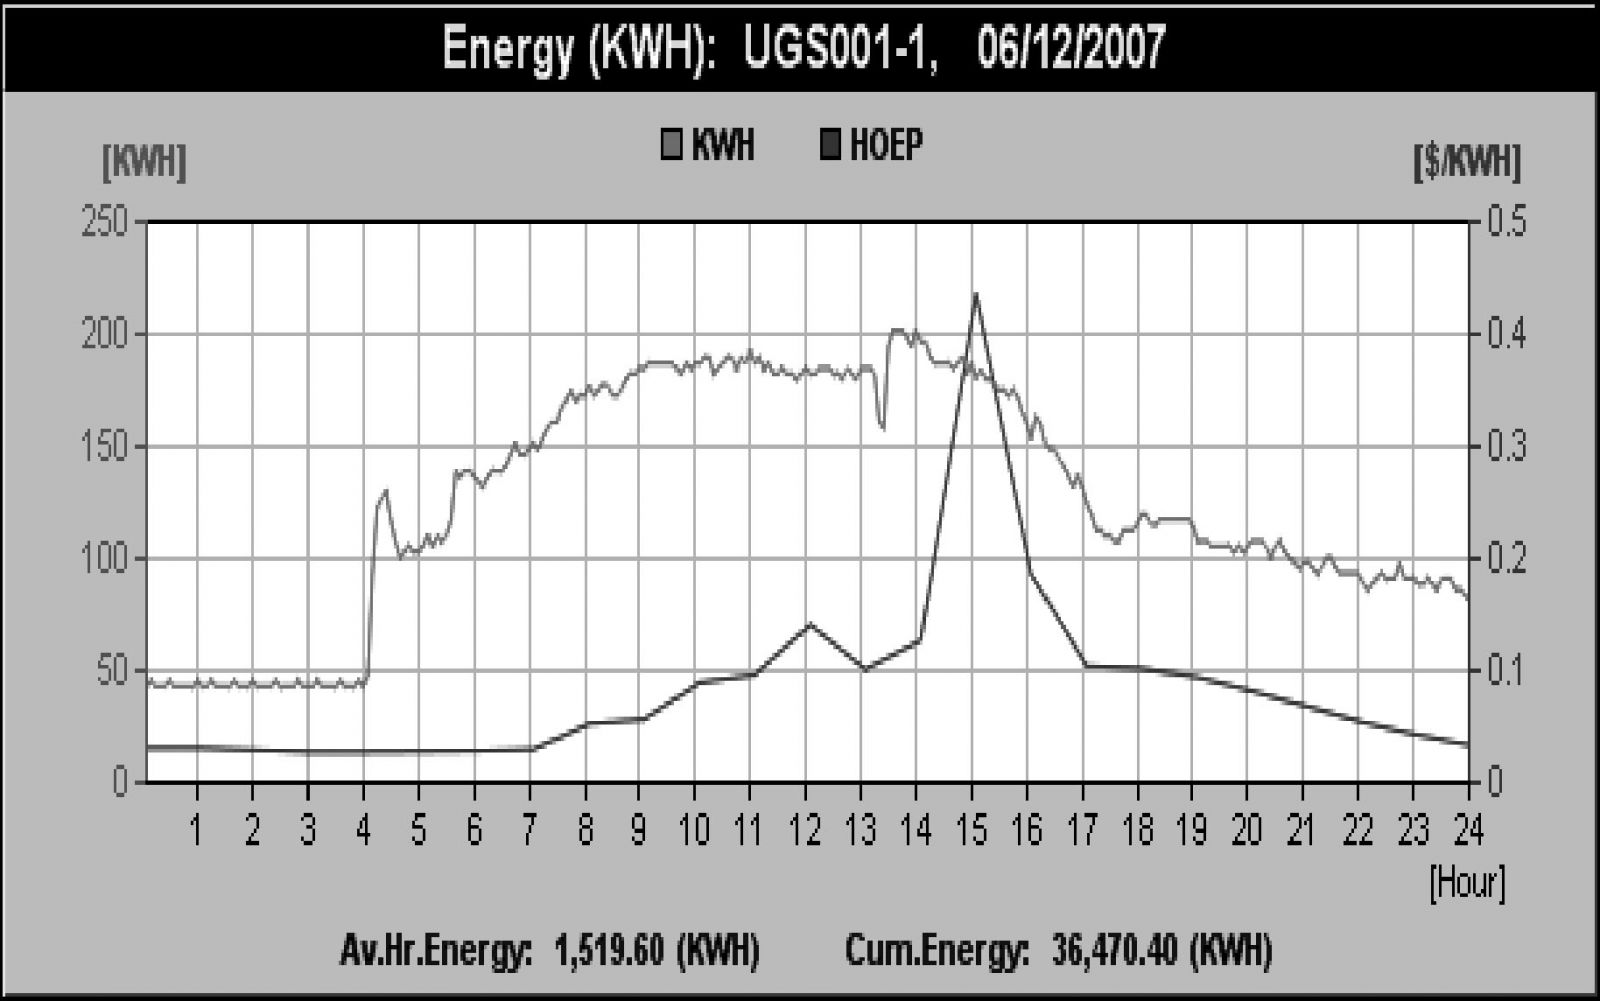 sample chart showing Electrical Energy (kWh) and Hourly Ontario Energy Price